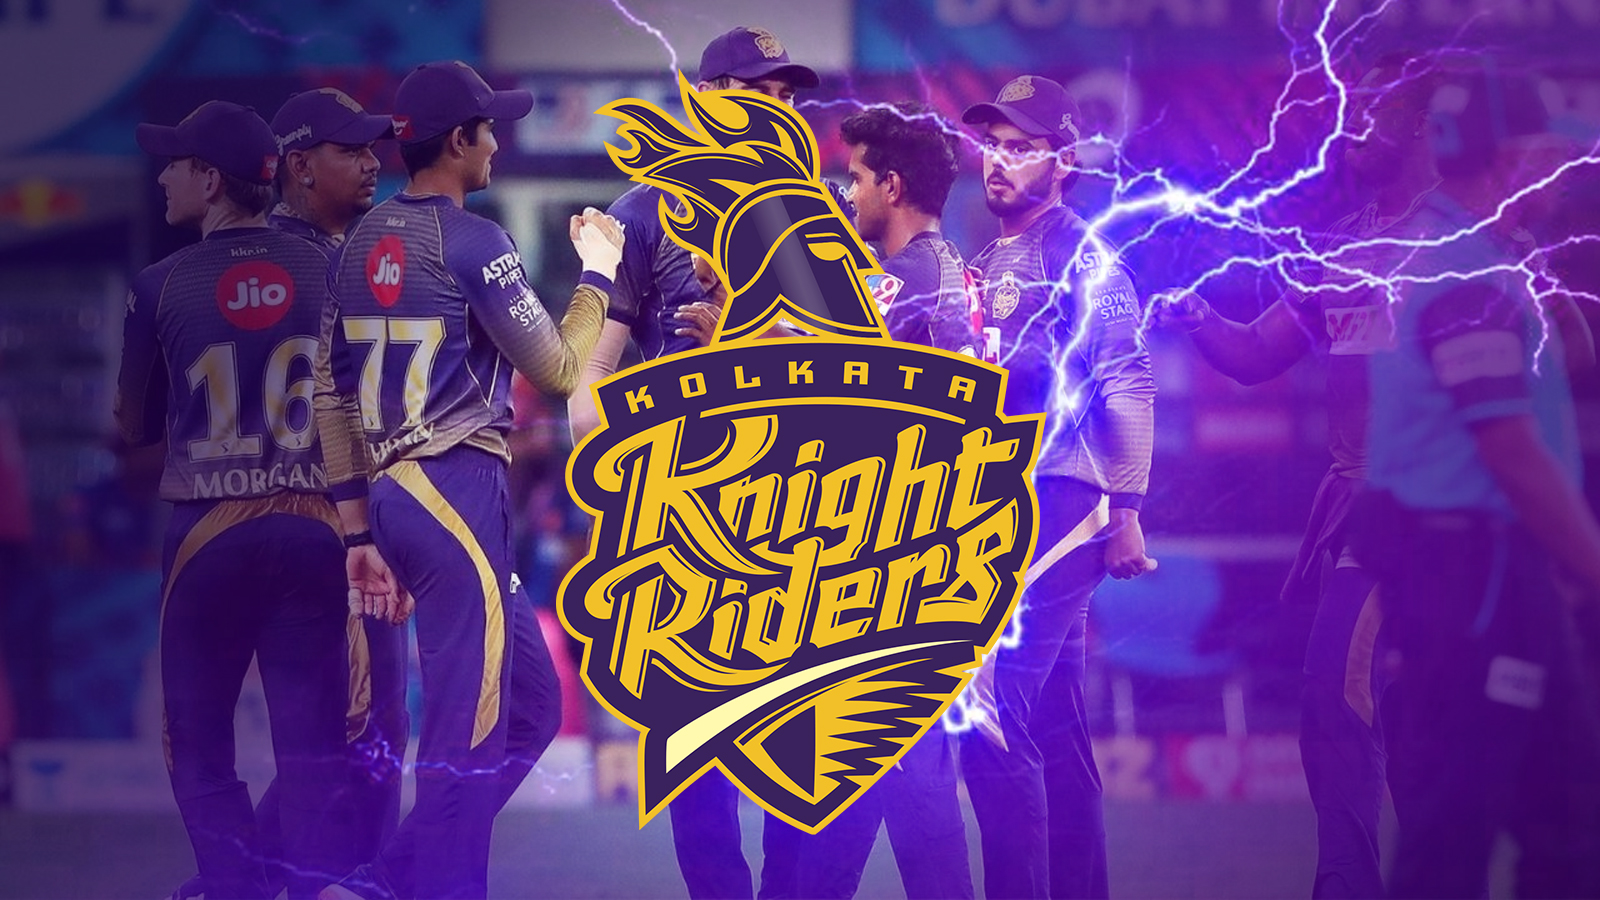 Join the IPL events and place bets on Kolkata Knight Riders.